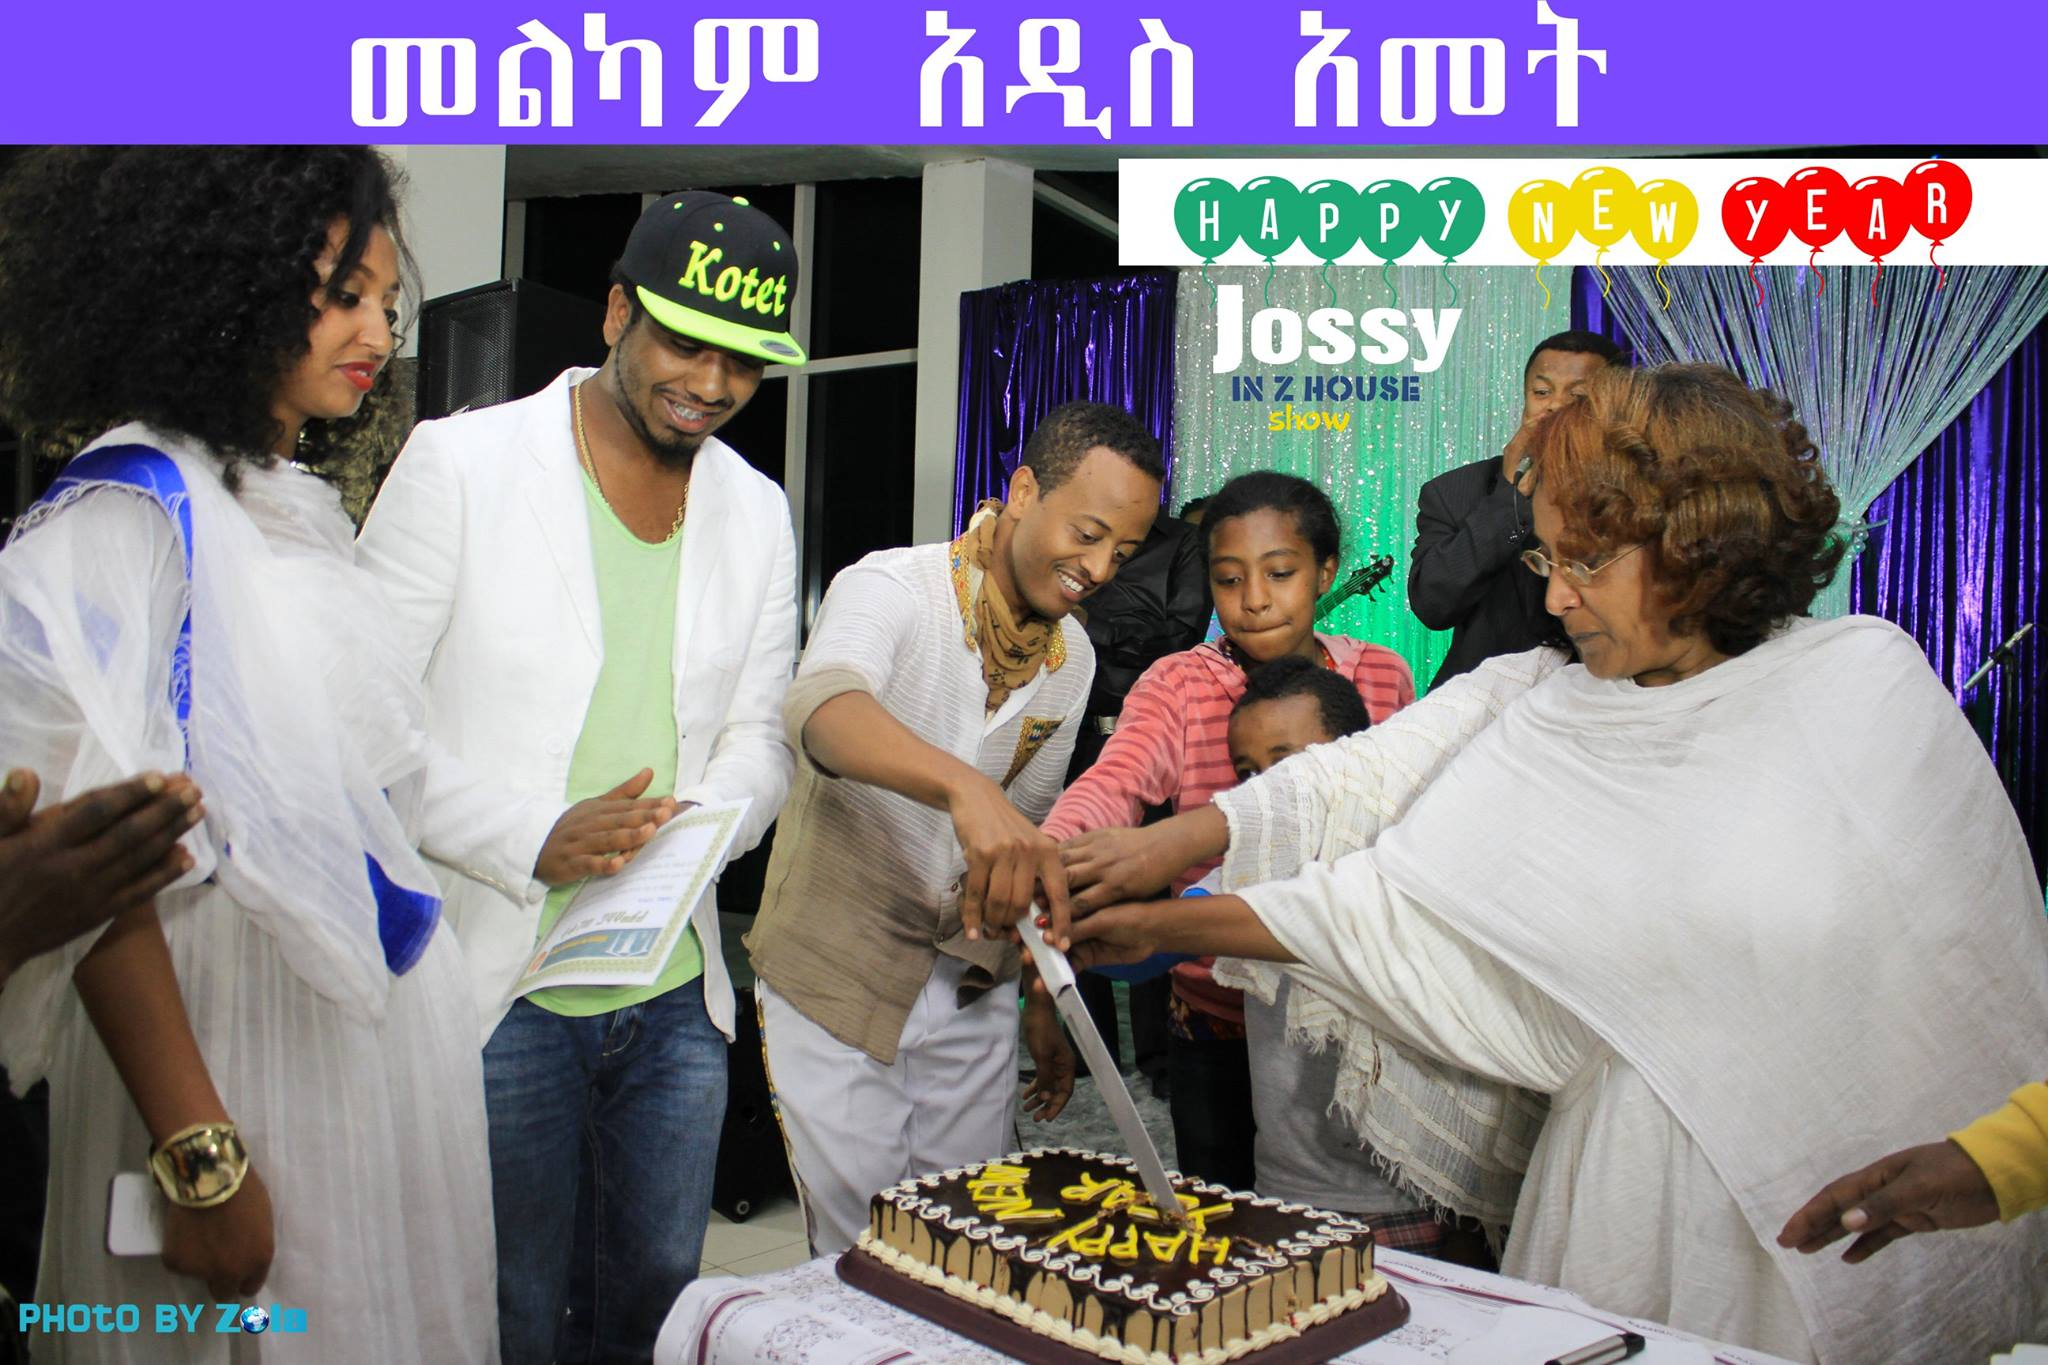 NEW YEAR Special - Surprise Visit at Alebachew Teka Family